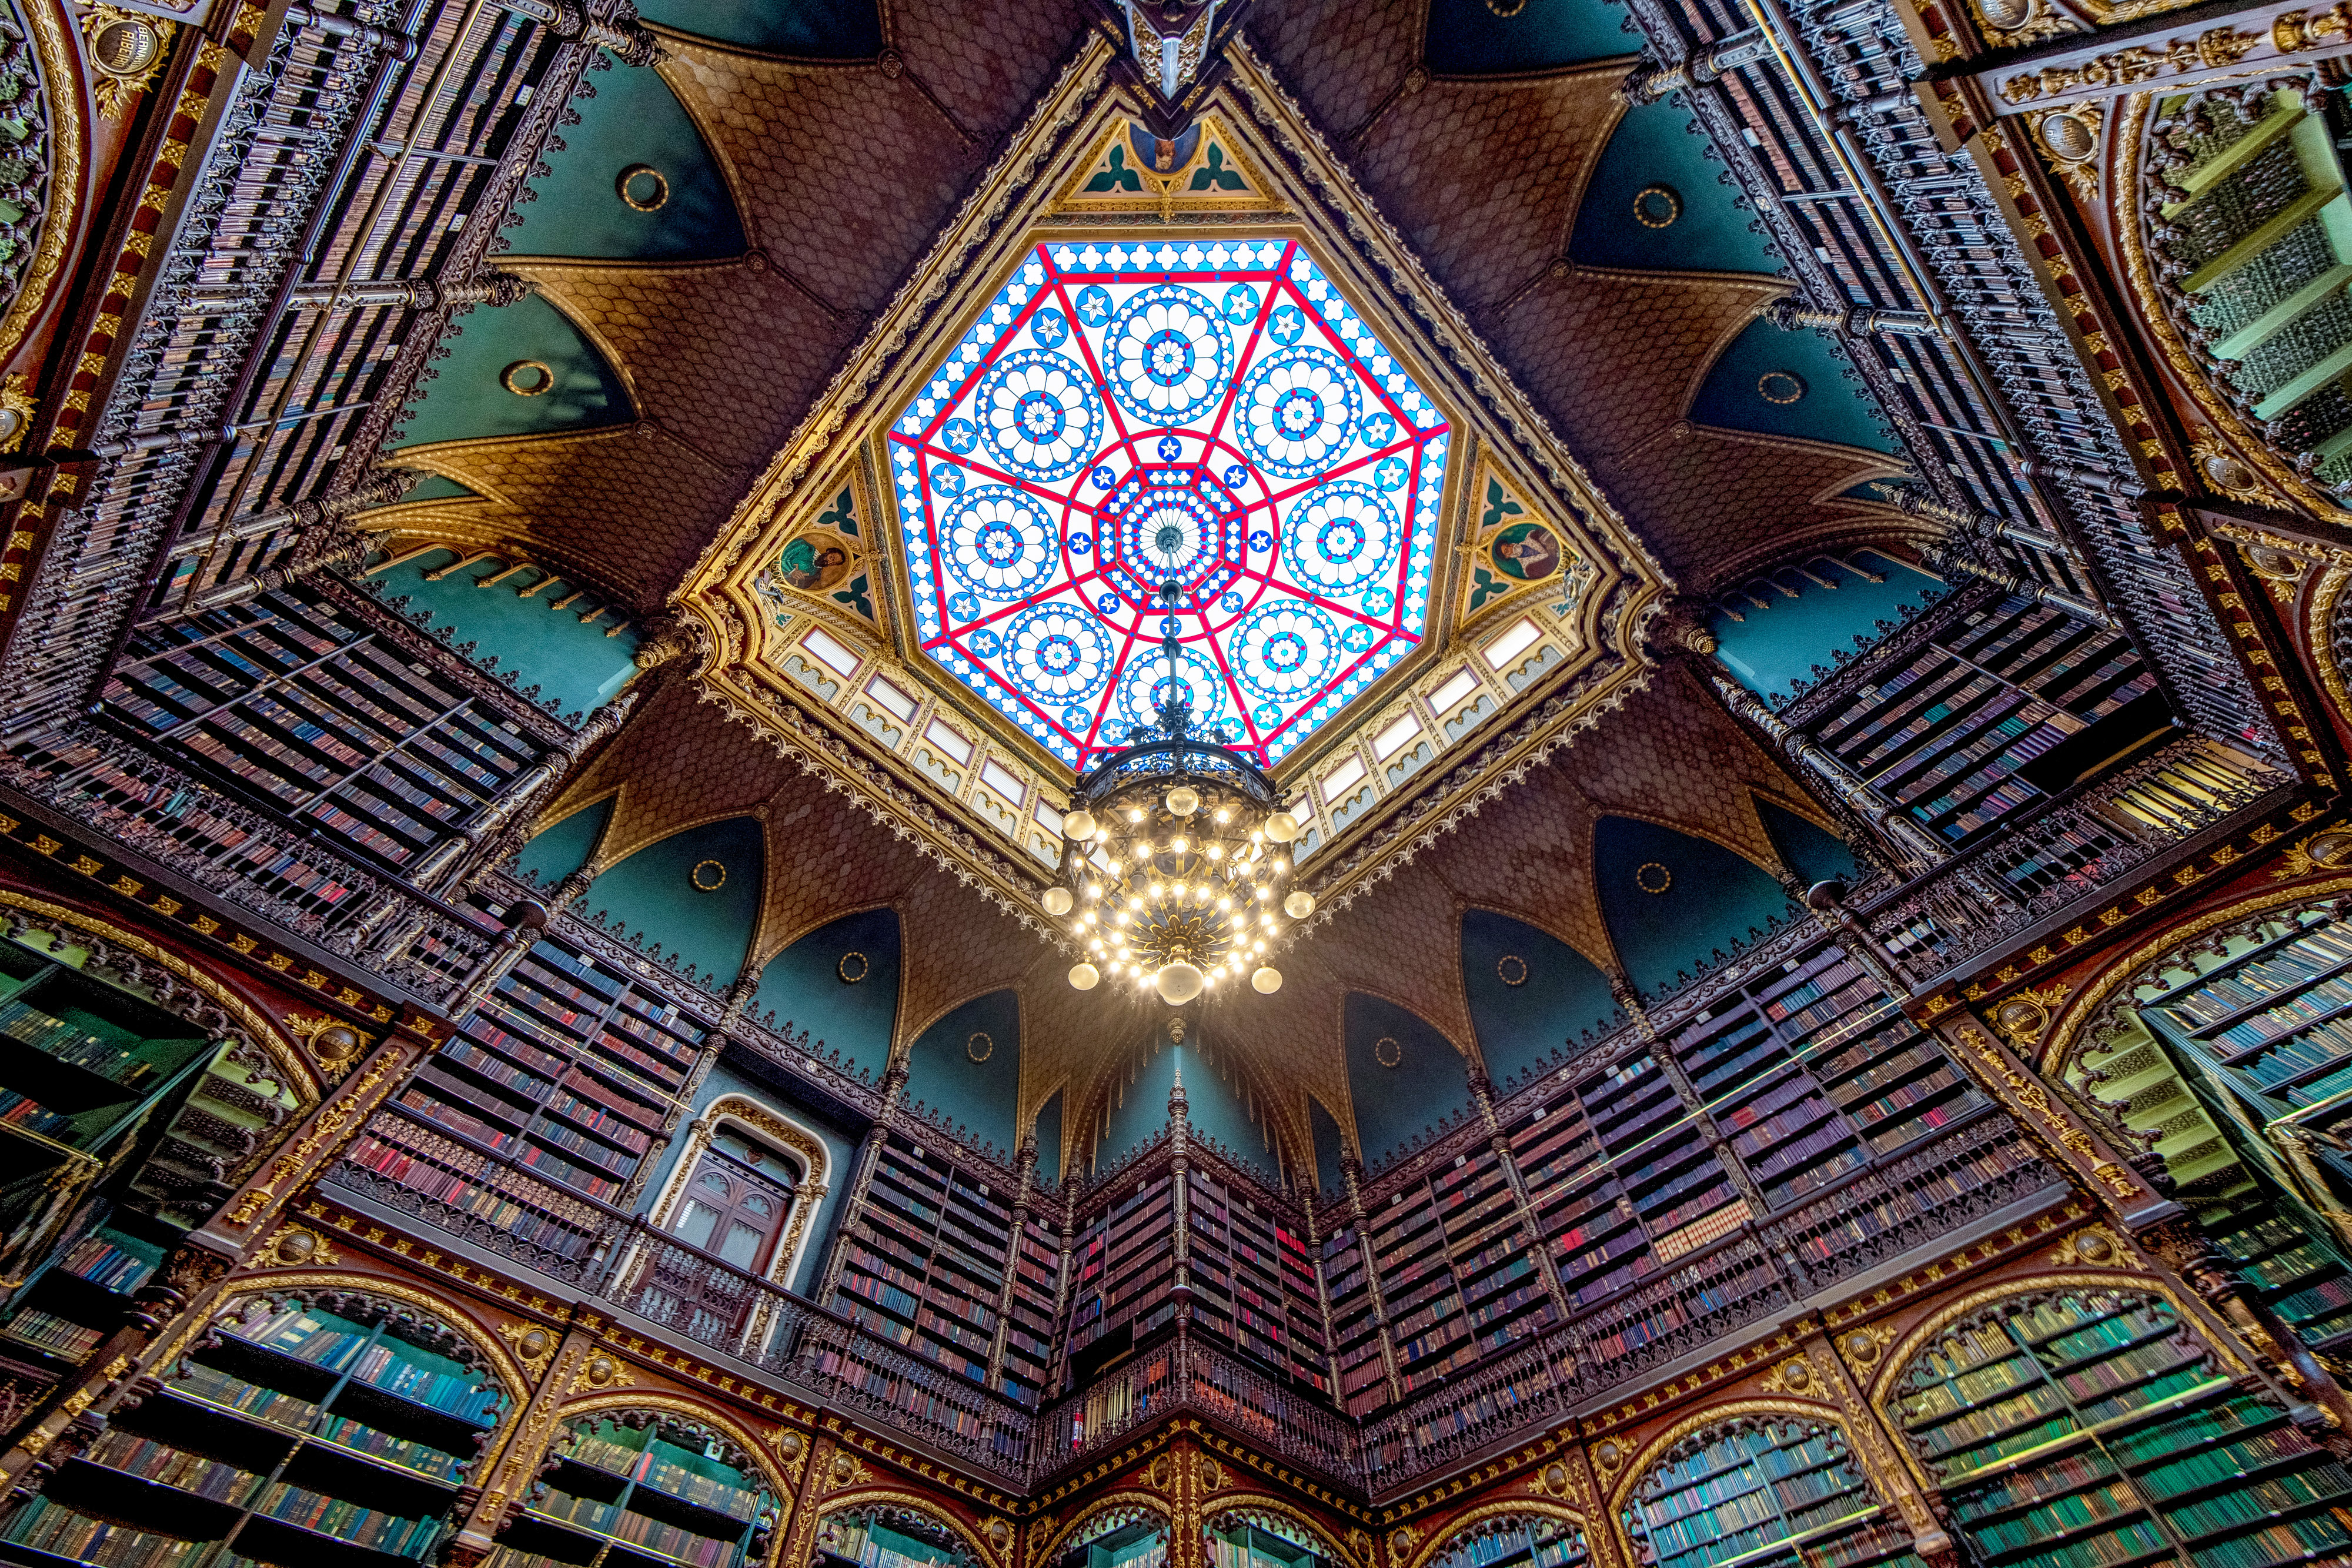 stained glass ceiling in the royal portuguese reading room